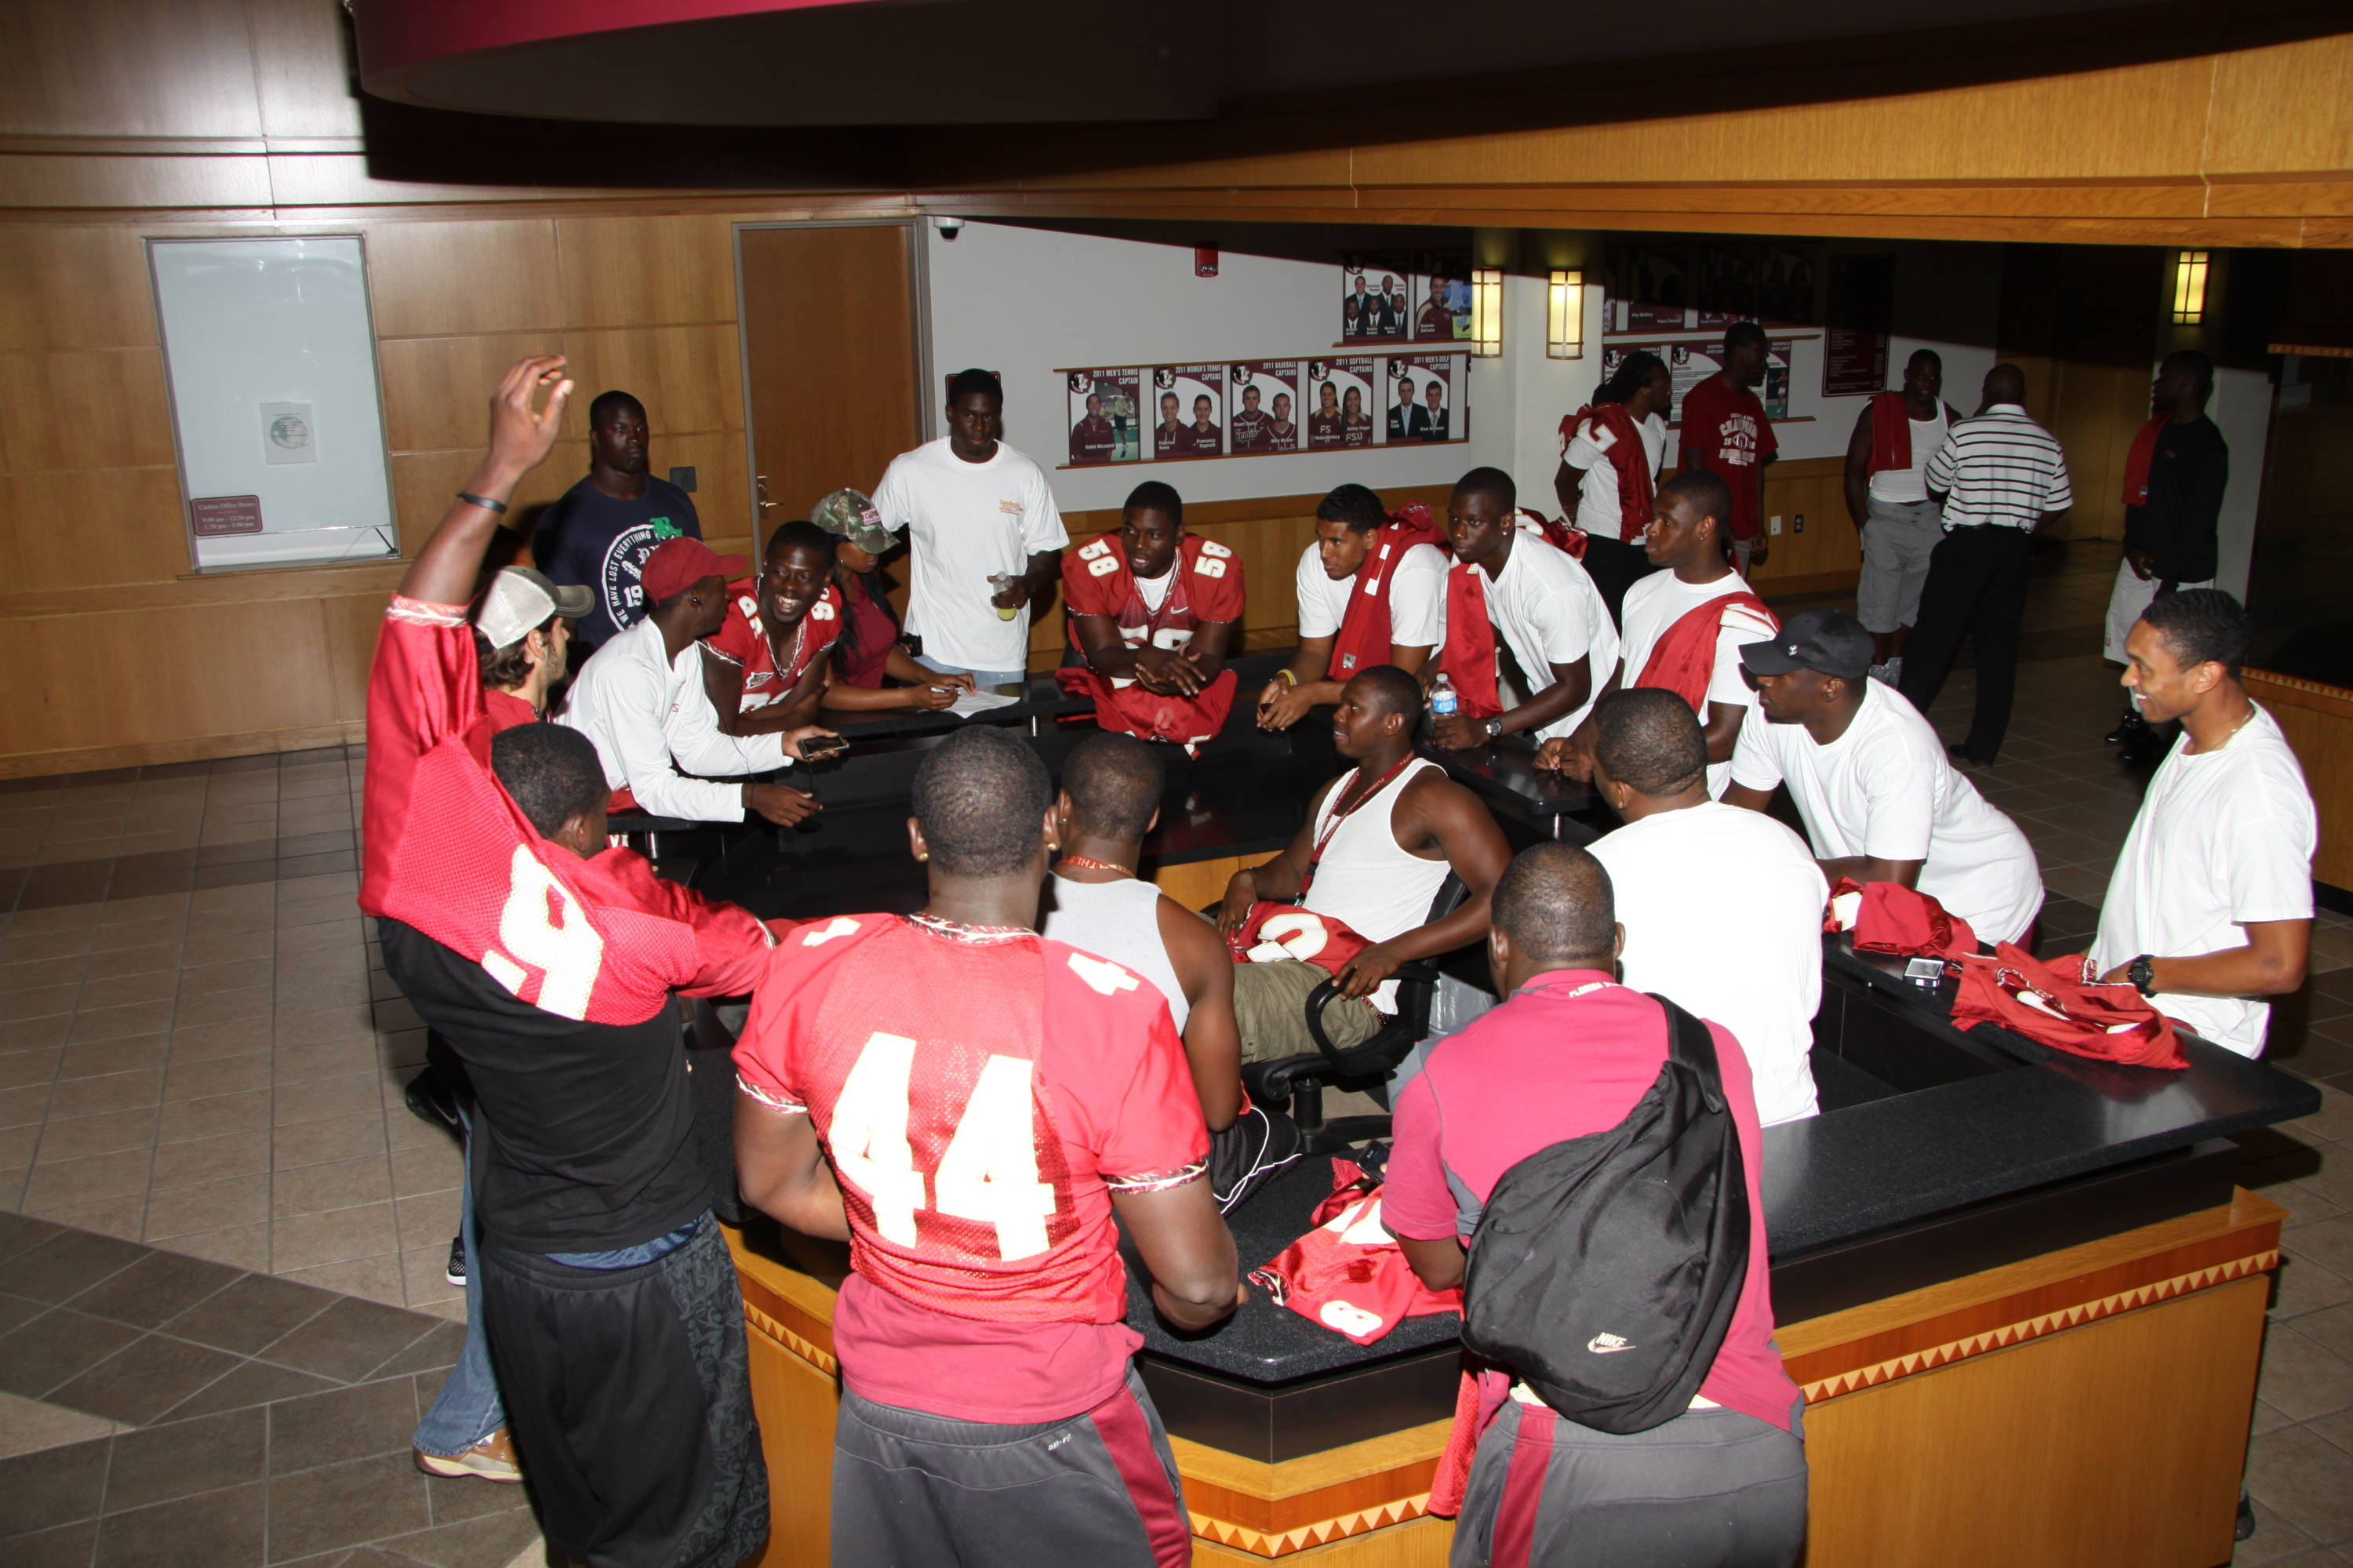 Players meet at the Moore Center before heading out for community service projects.